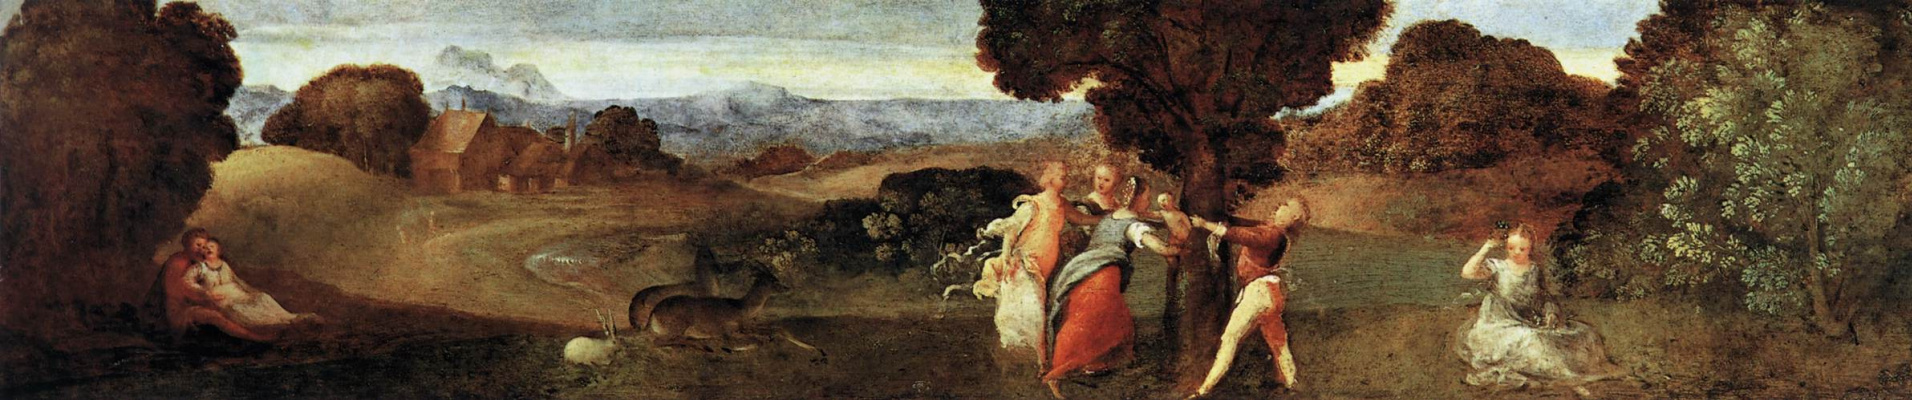 Titian Vecelli. Birth of Adonis